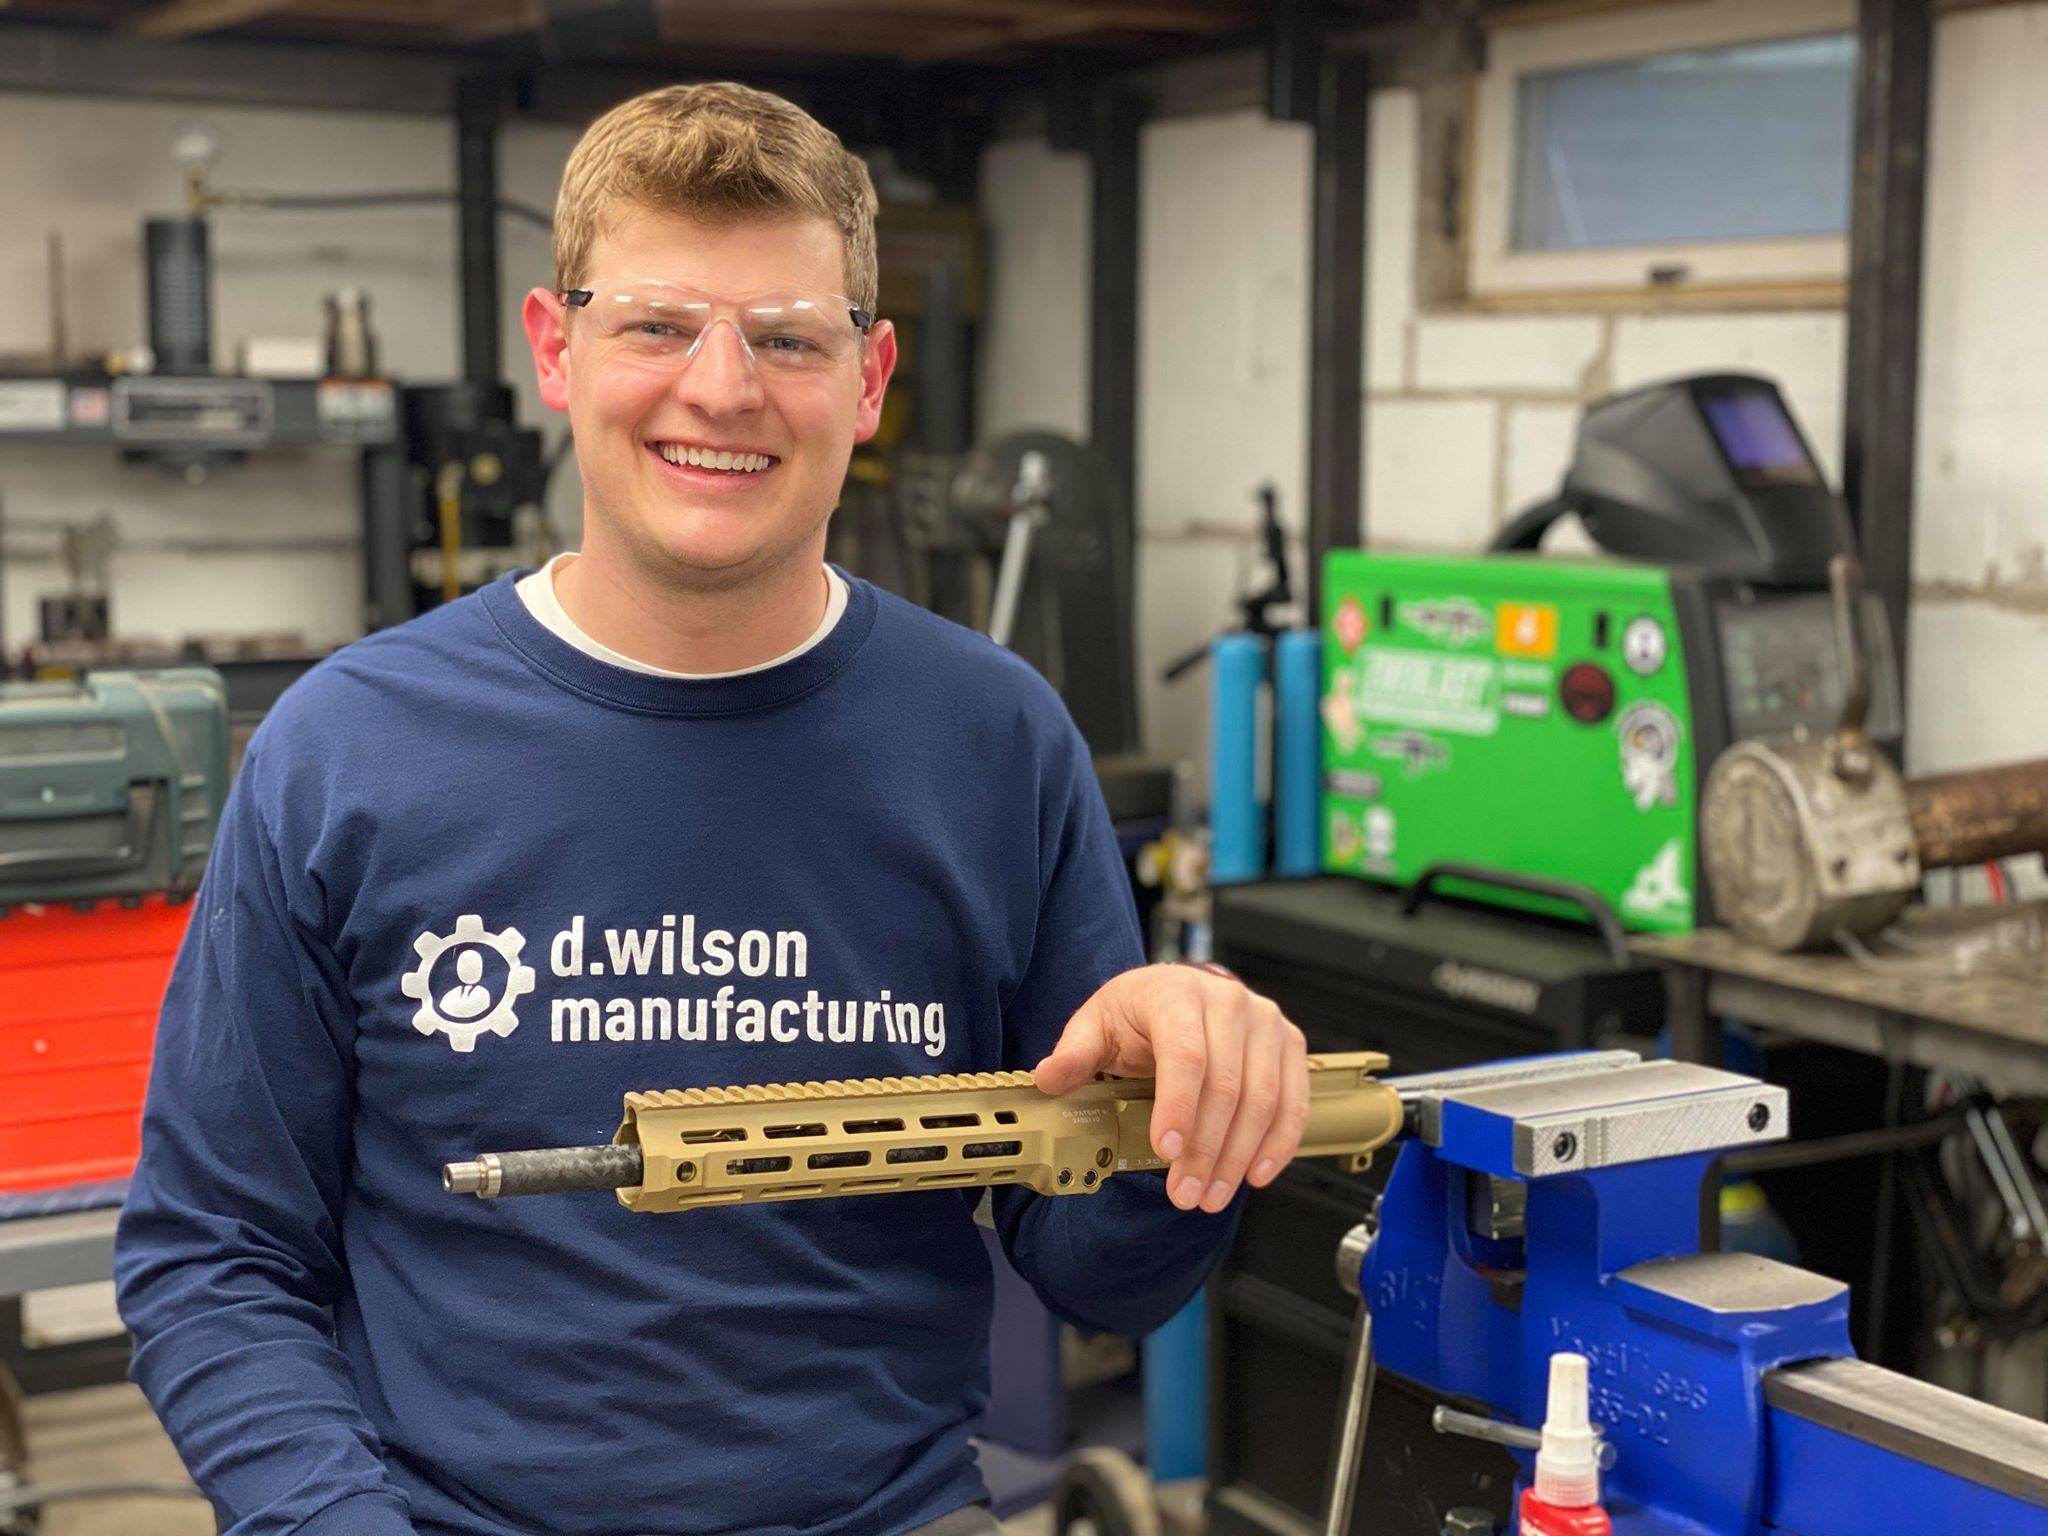 D. Wilson Manufacturing -  A Q&A with Dave Wilson